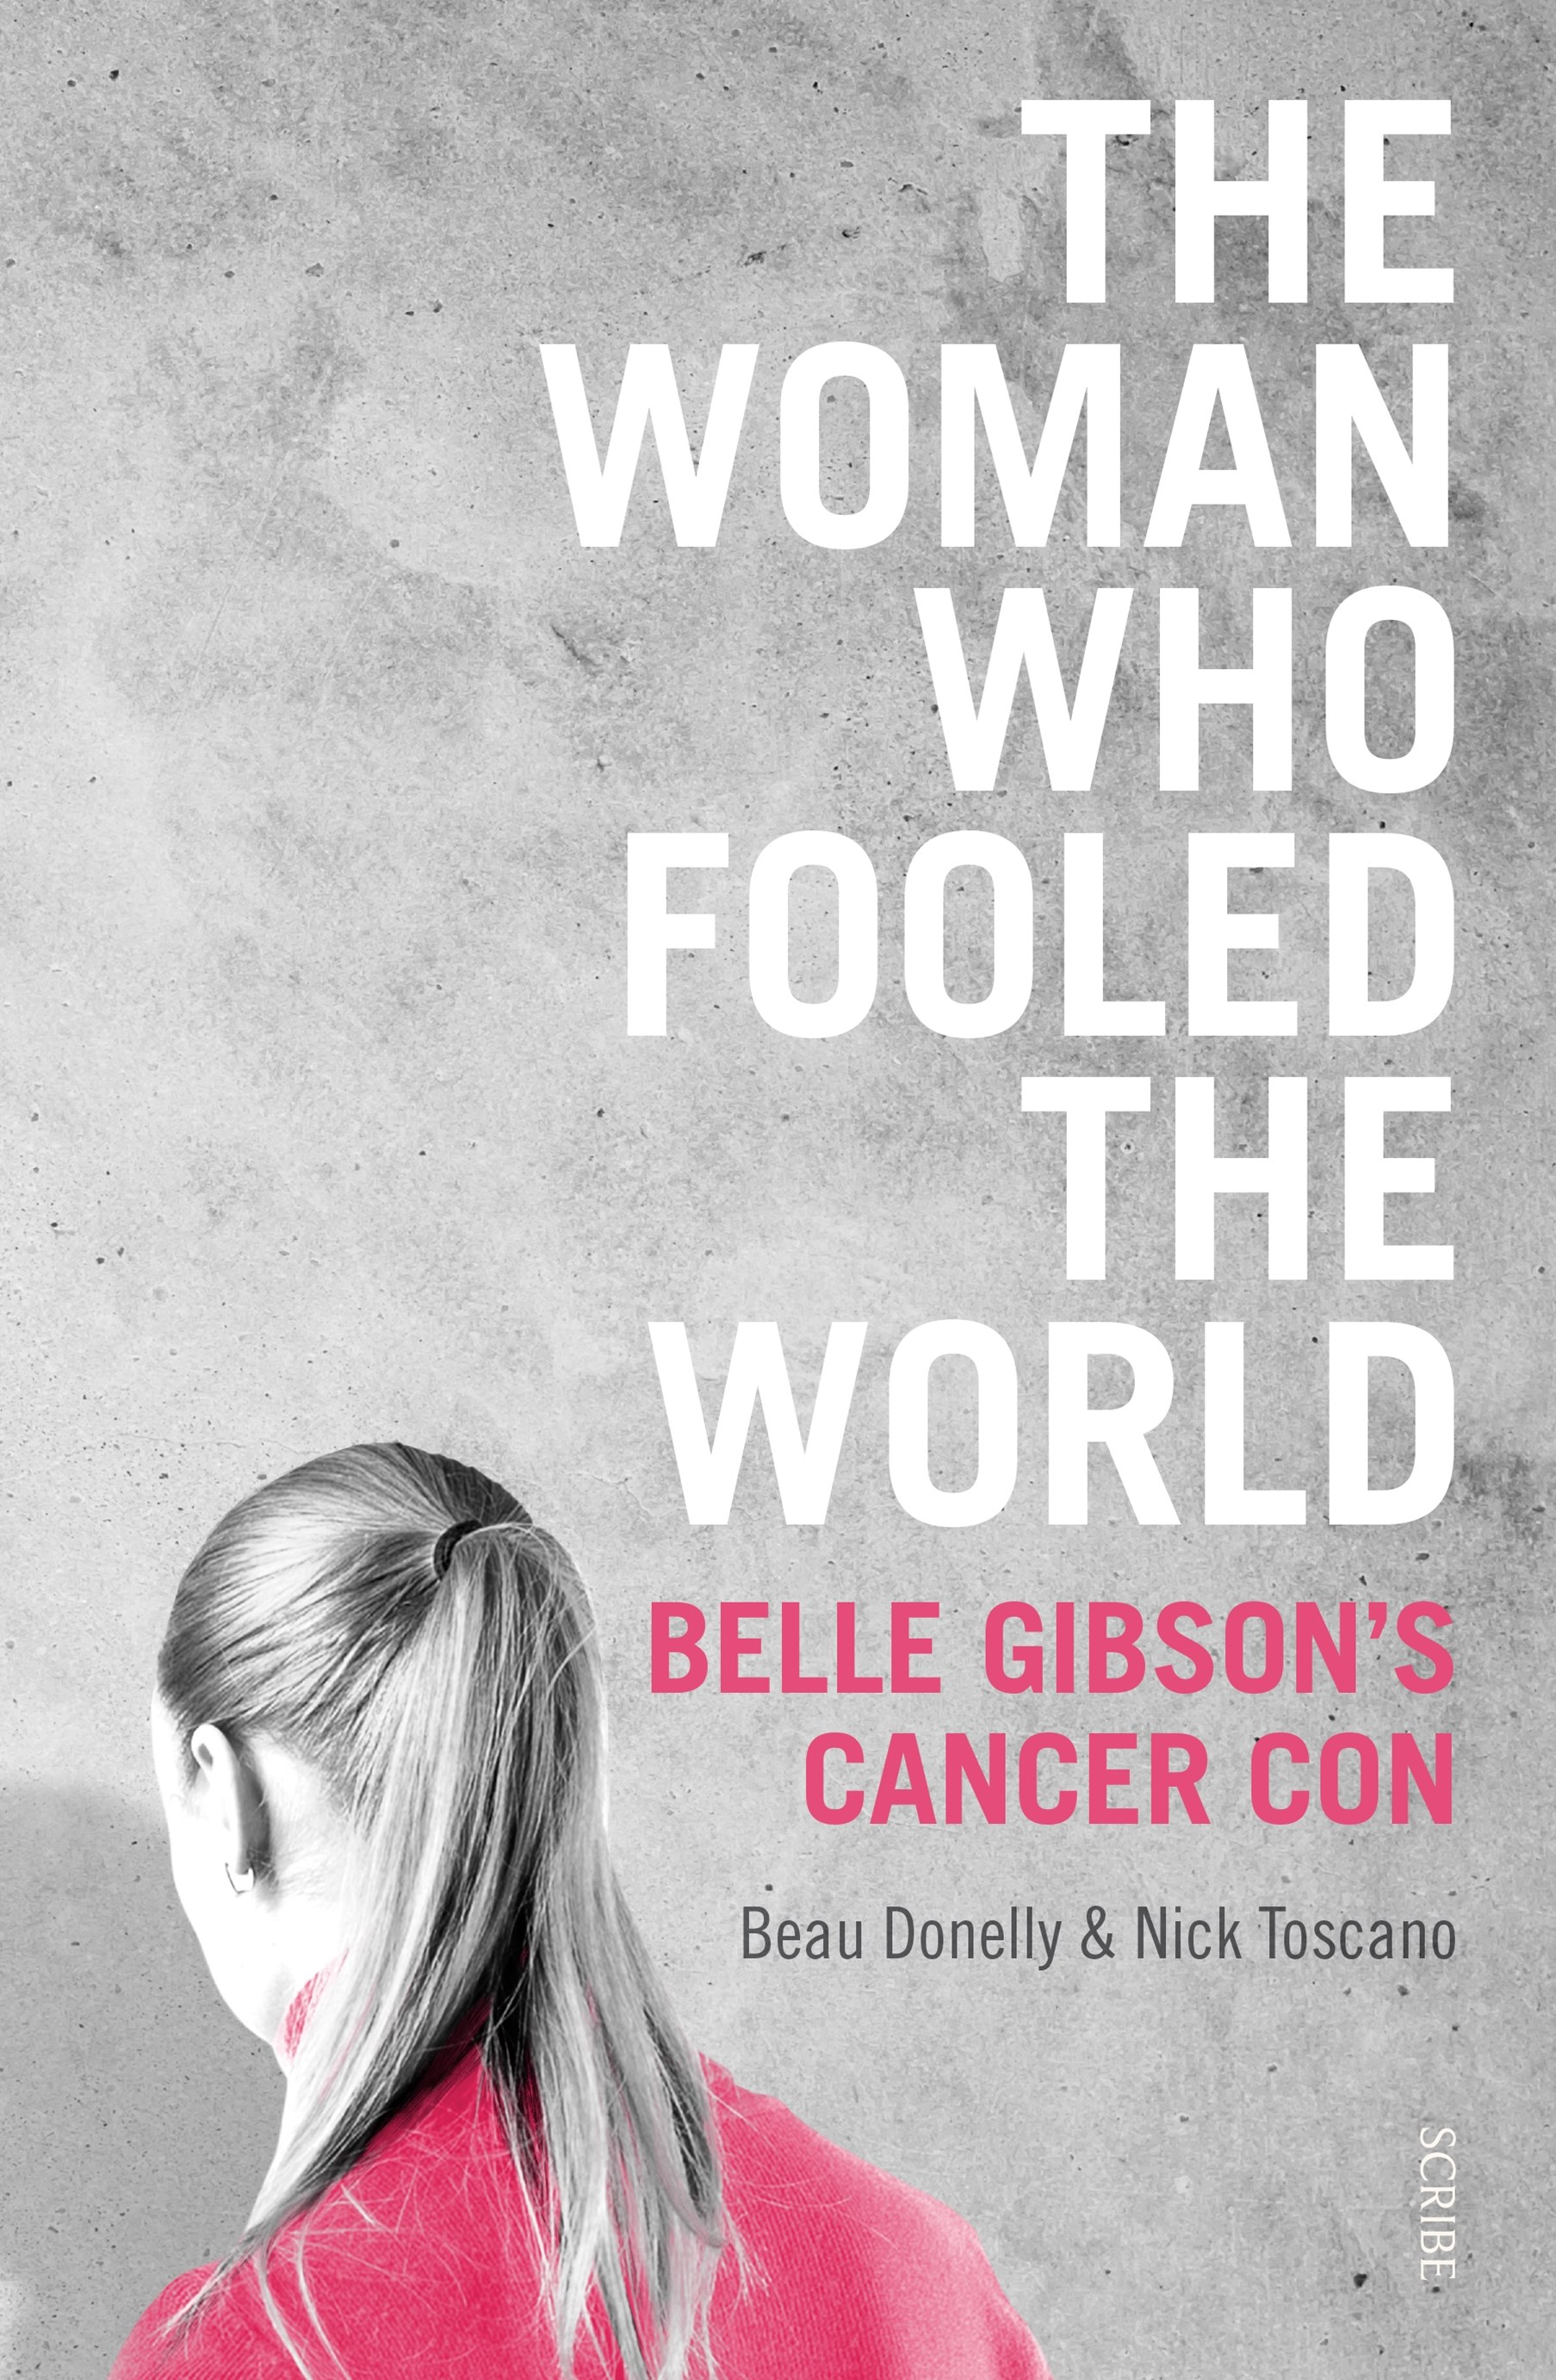 The Woman Who Fooled the World: Belle Gibsons Cancer Con